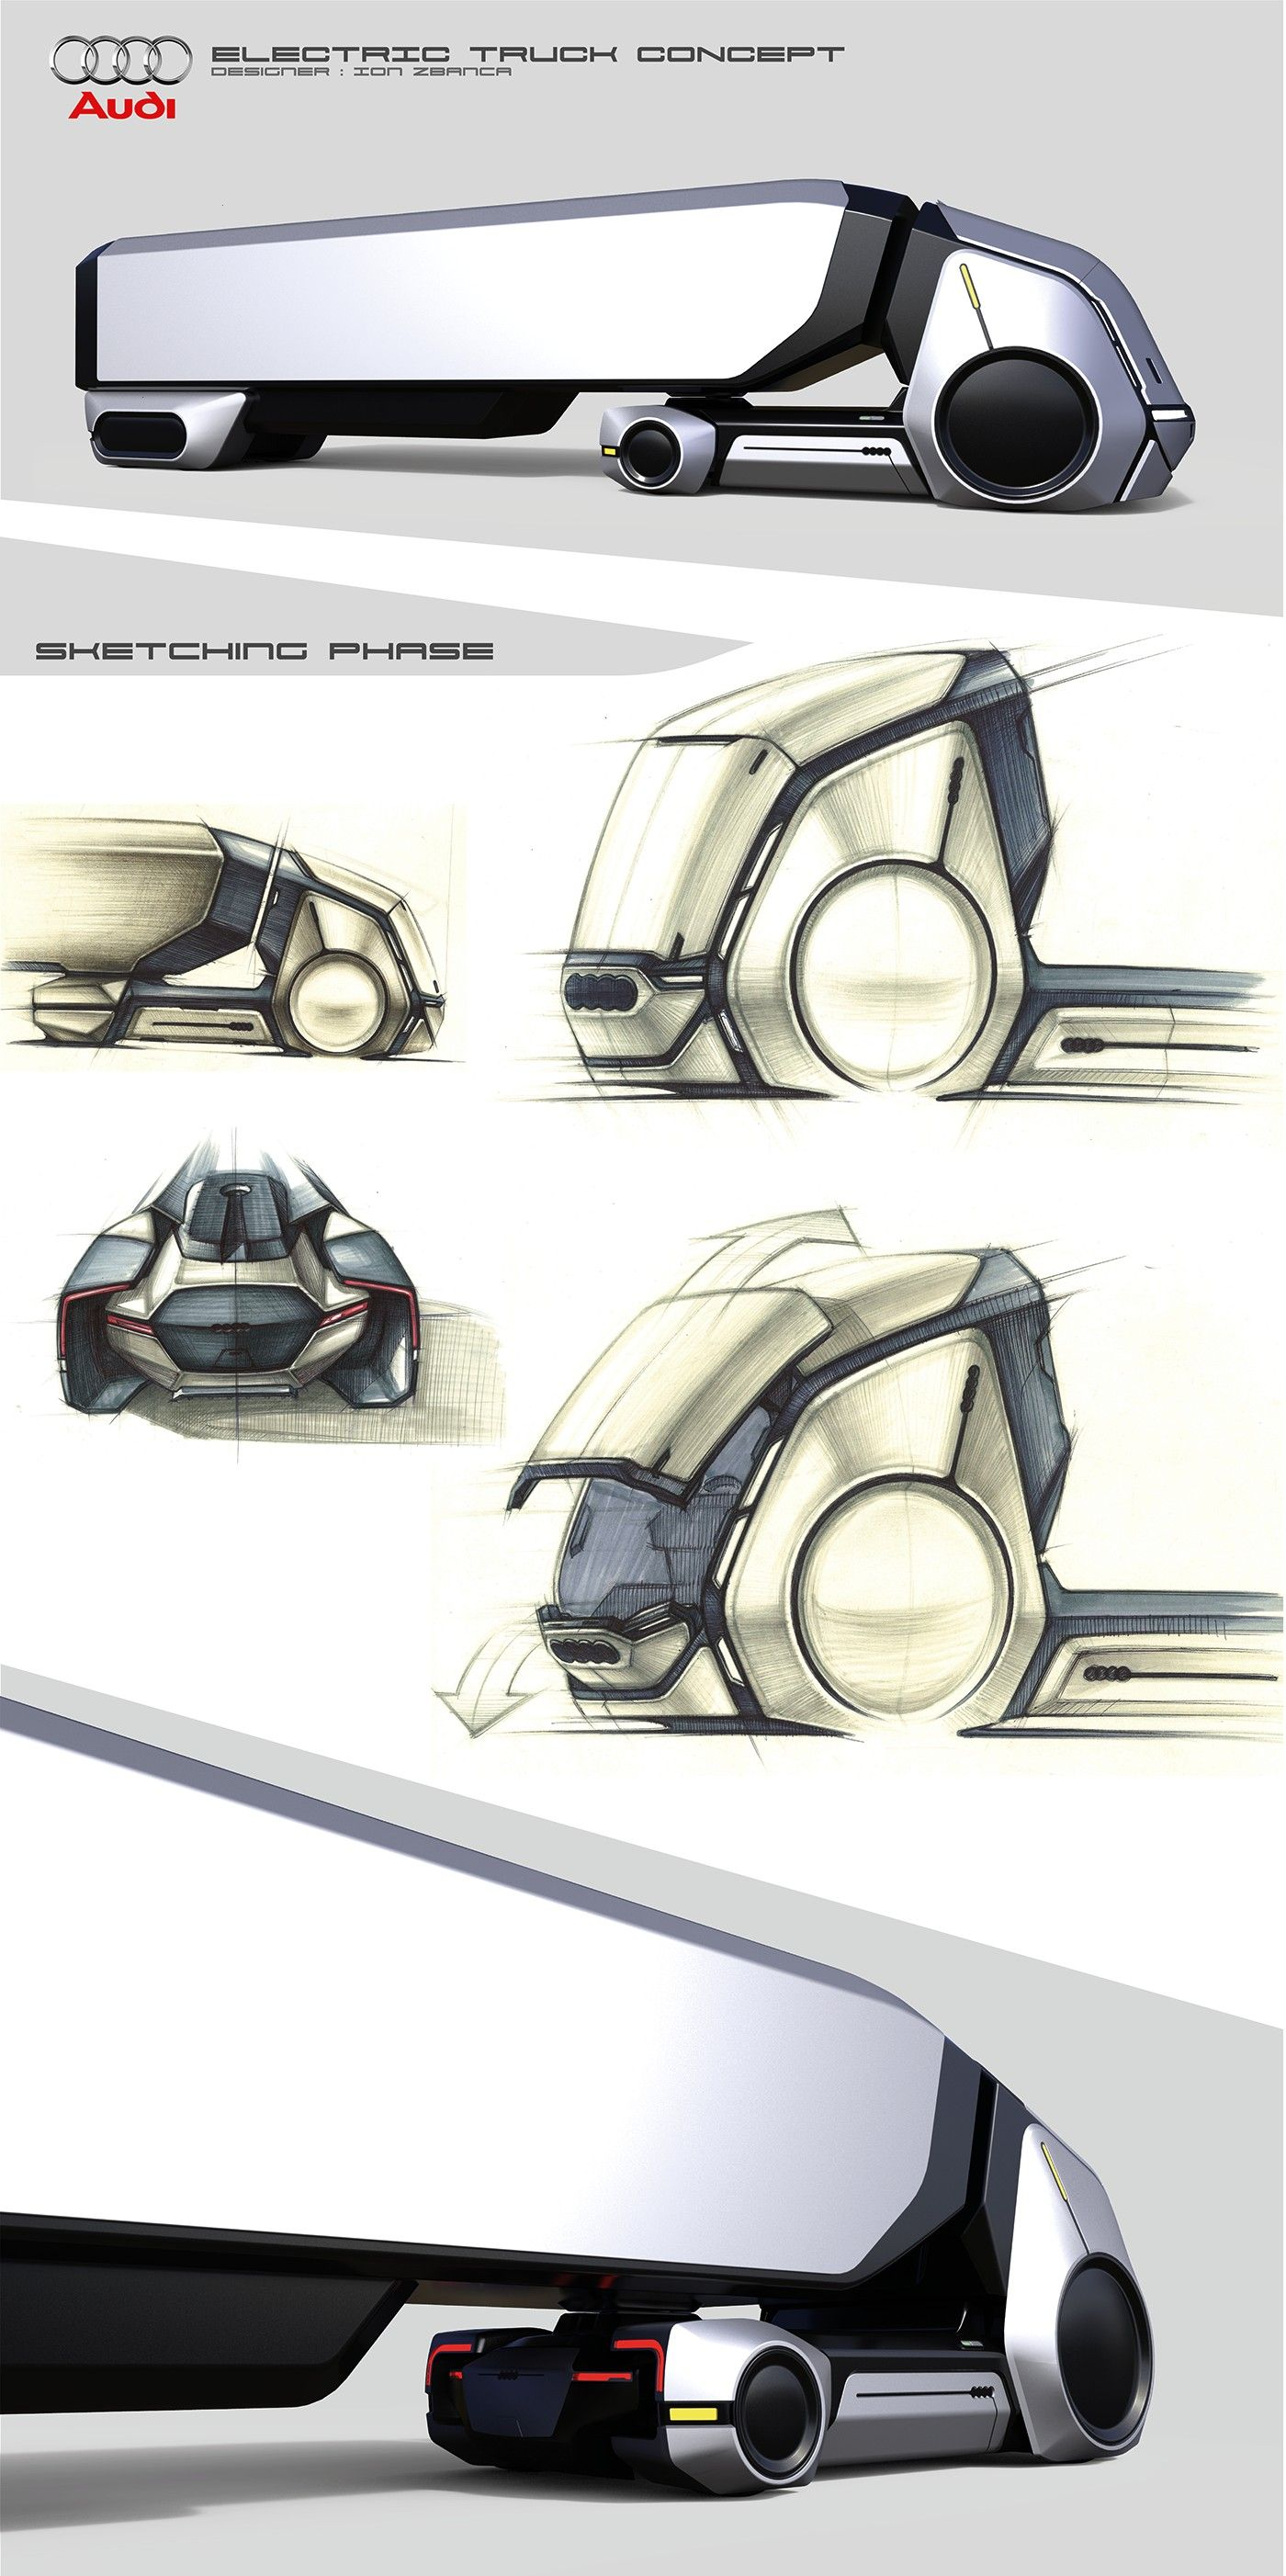 Electric Truck Concept on BehanceAudi Electric Truck Concept on Behance  Sketches on Behance  The R